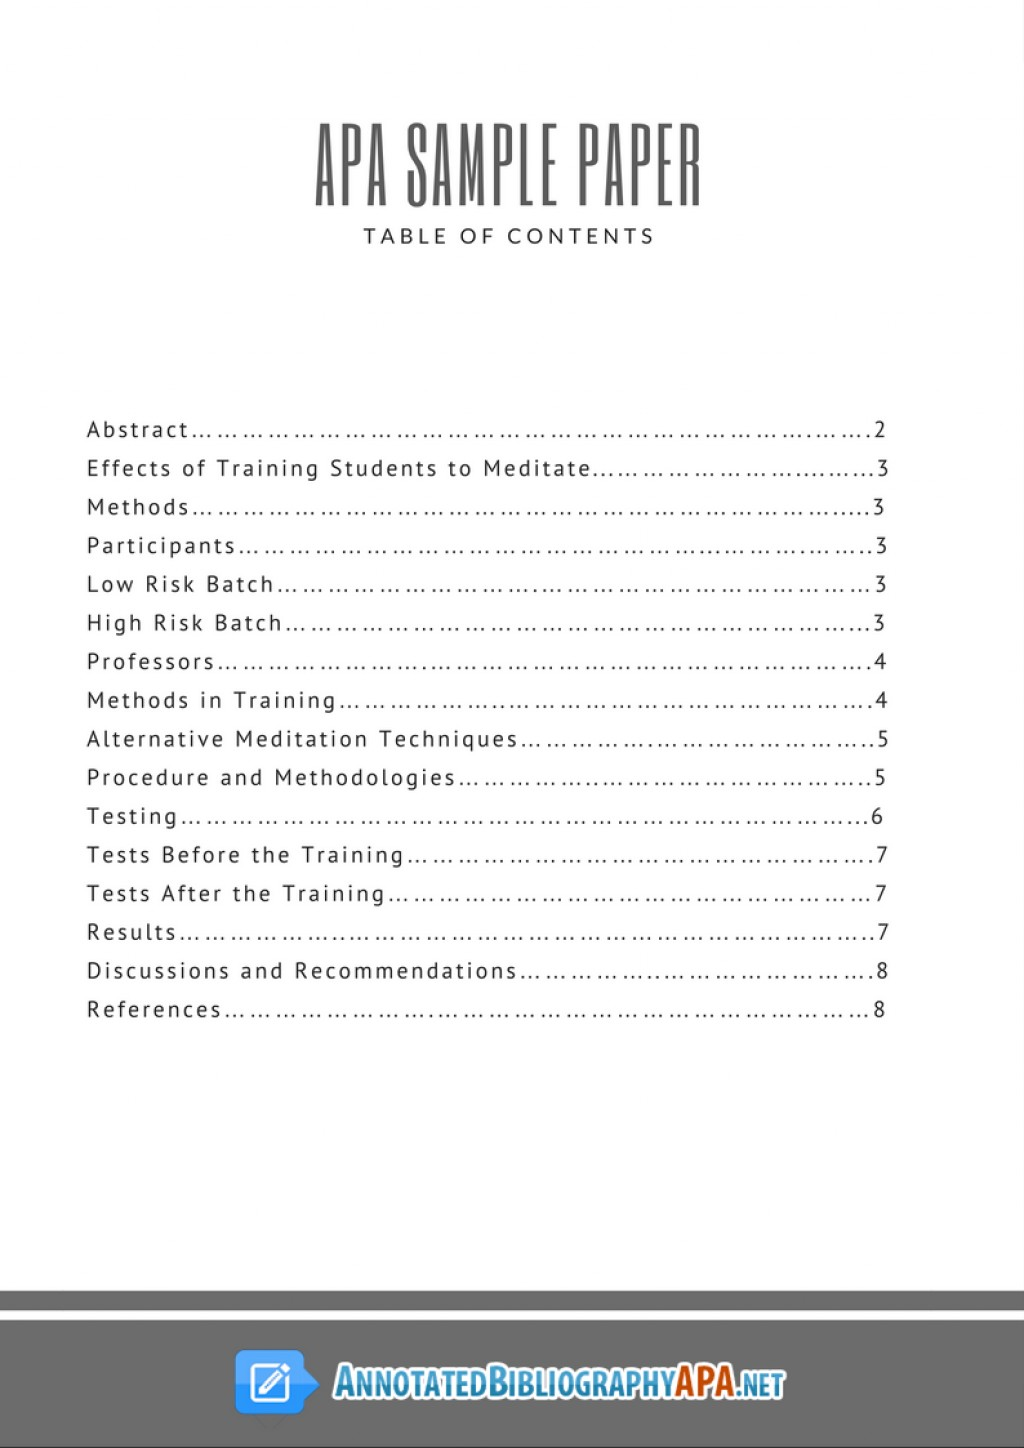 003 Apa Style Research Paper Sample With Table Of Remarkable Contents Large